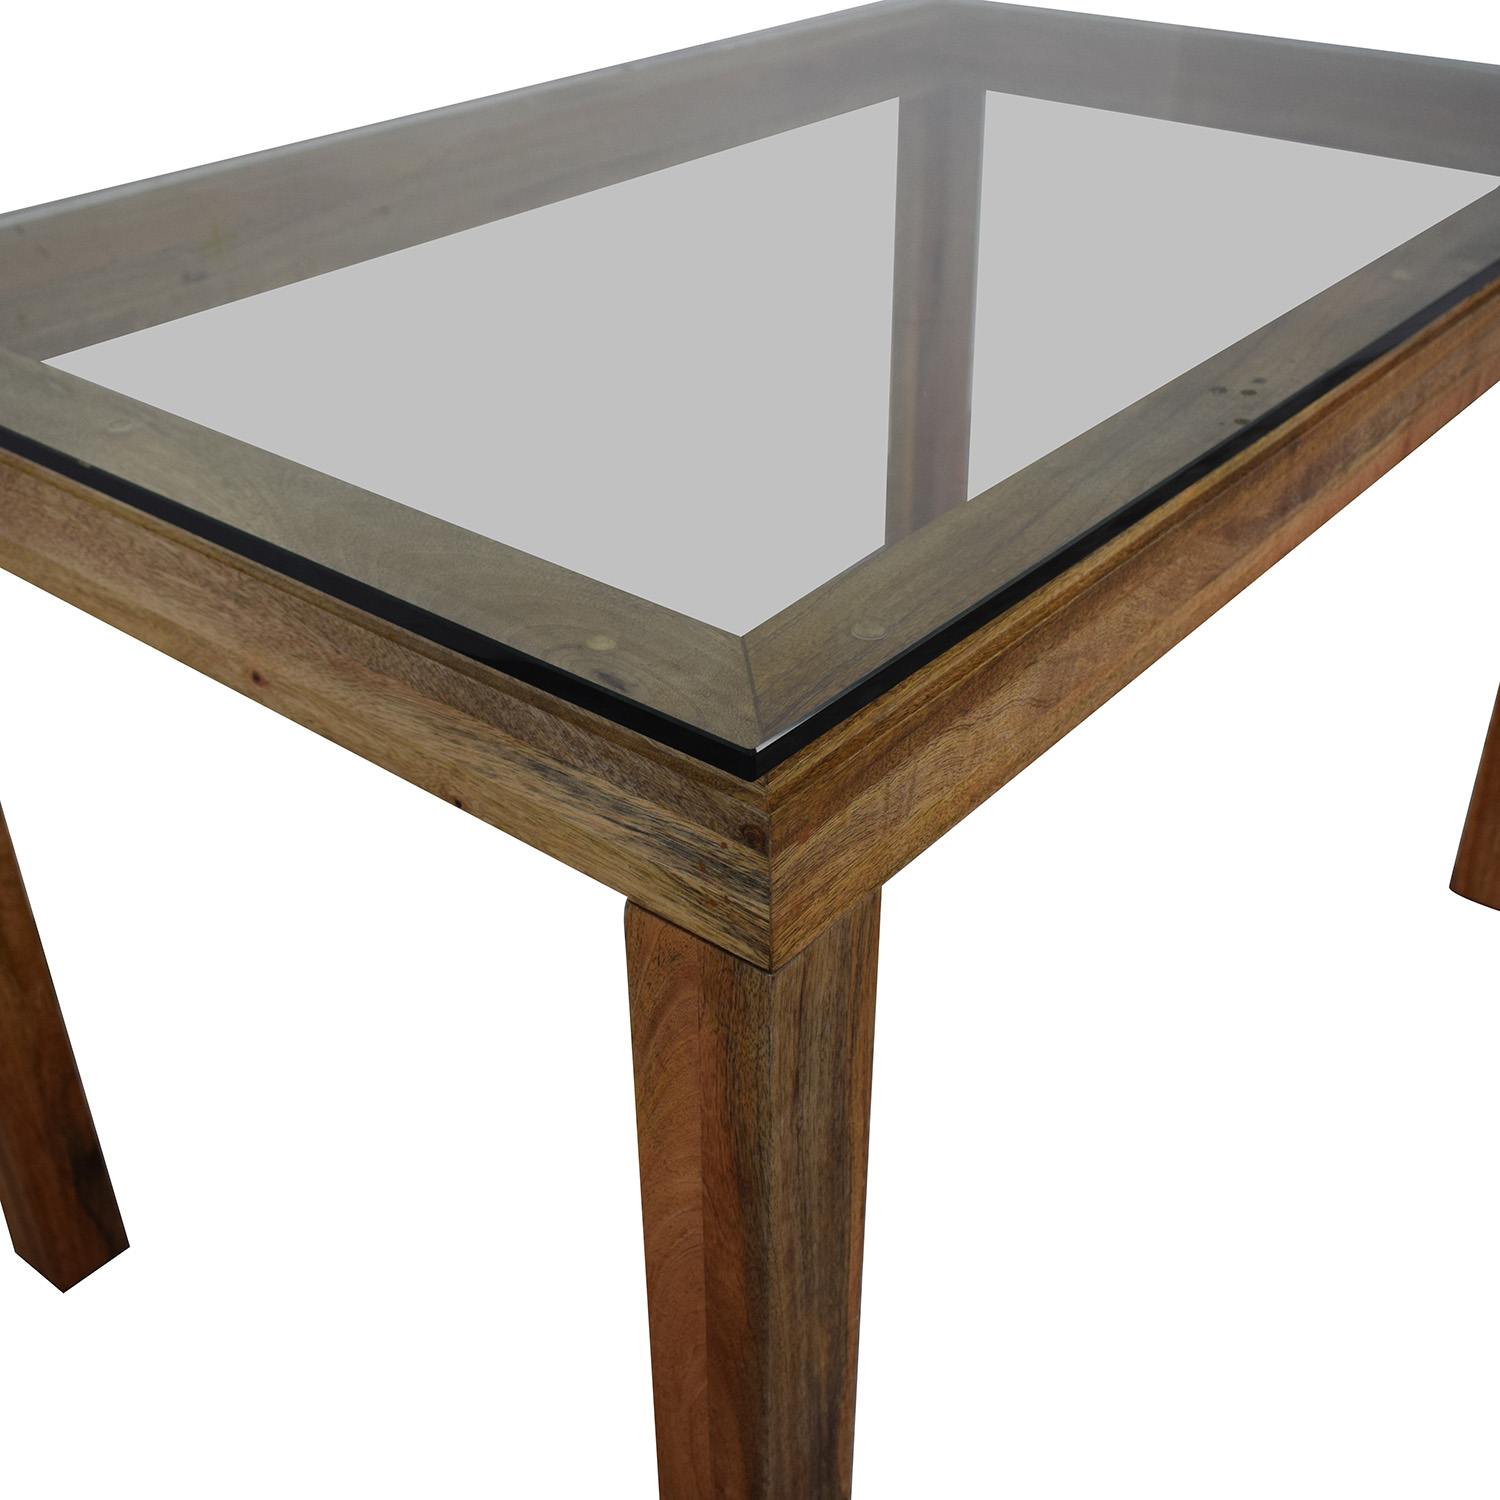 West Elm West Elm Glass Top Table price